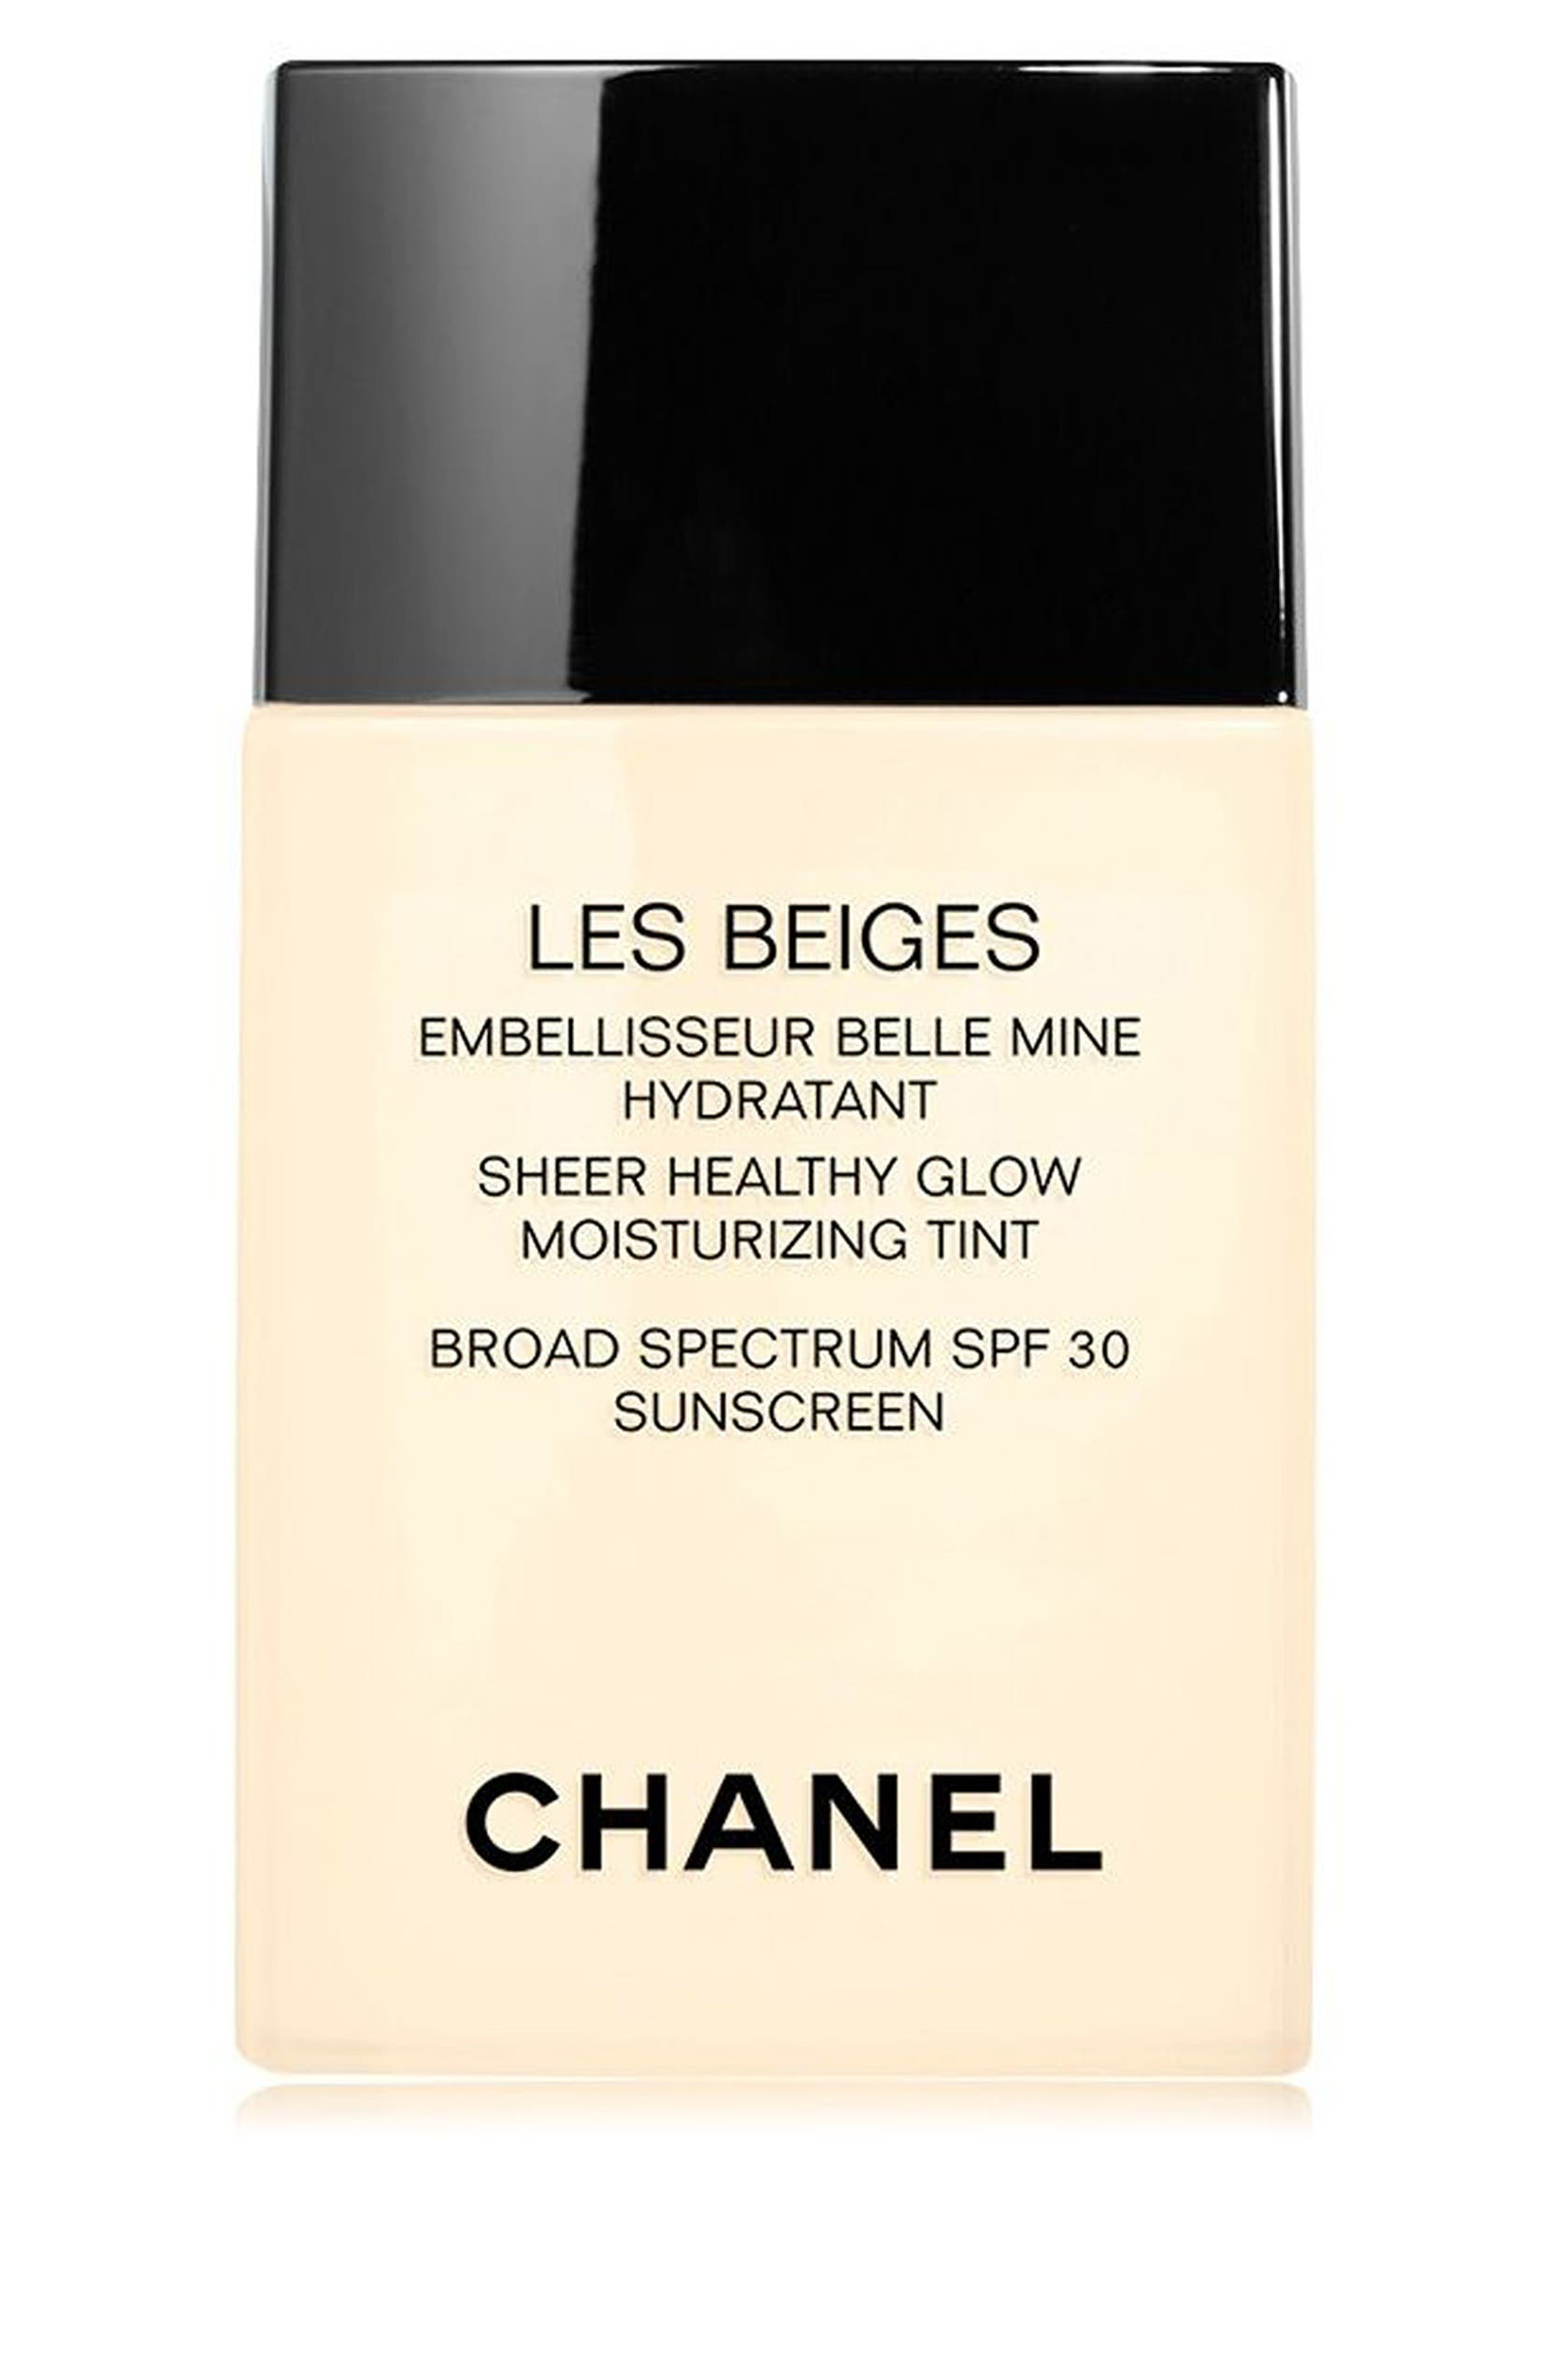 LES BEIGES SHEER HEALTHY GLOW Moisturizing Tint Broad Spectrum SPF 30